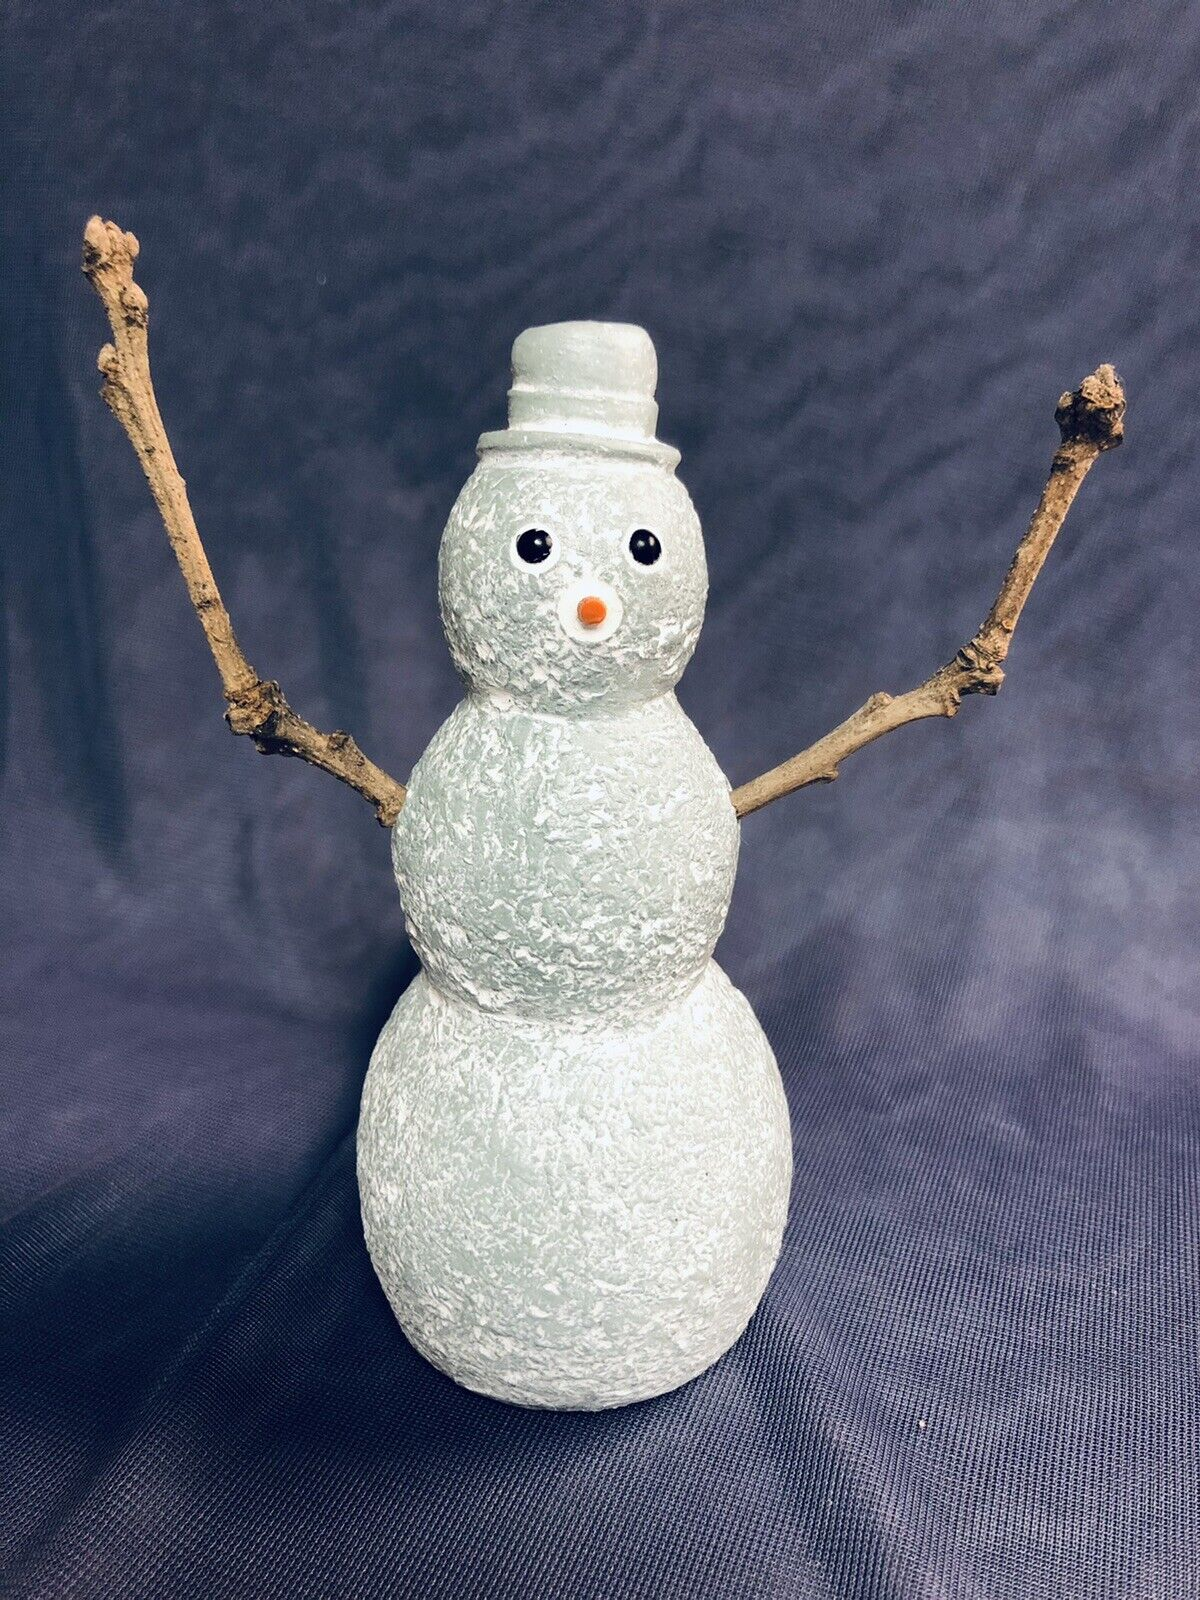 1998 Rare Retired Isabel Bloom SNOWMAN With STICK ARMS 5 Winter Friends - $15.99